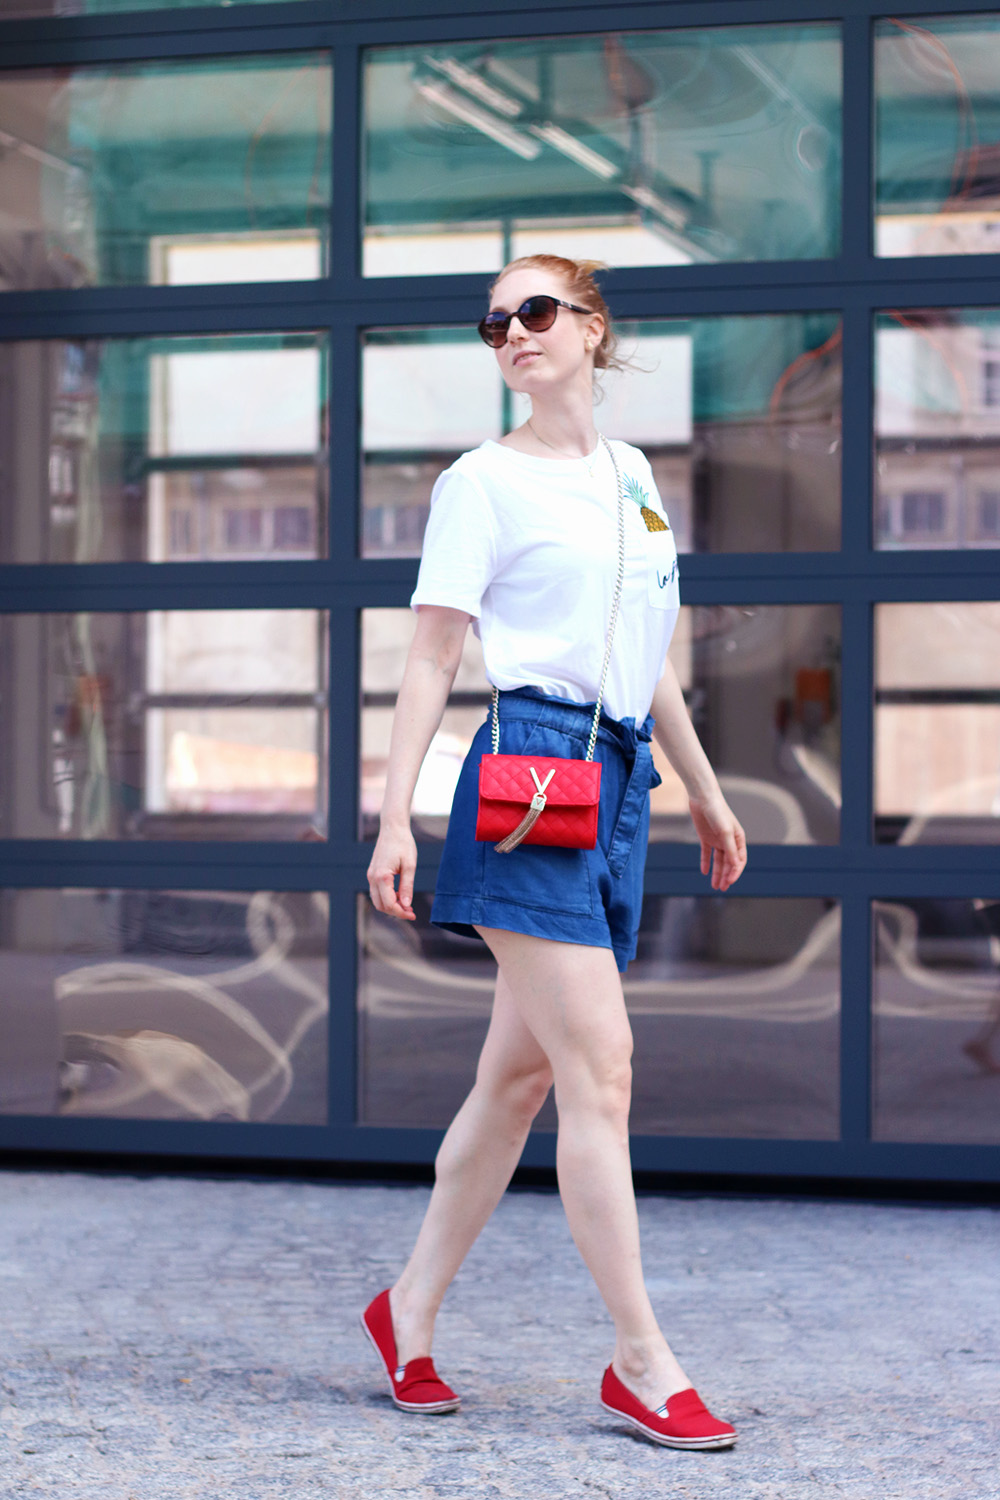 Valentino Bag, Gold, Red, Jeans Shorts, Pants, Summer Look, Outfit, Tips, Streetstyle, Fashion Tips, Find Your Style, Influencer, Germany, Berlin, Fashion Blog, Fashion Blog, Advance Your Style, advanceyourstyle